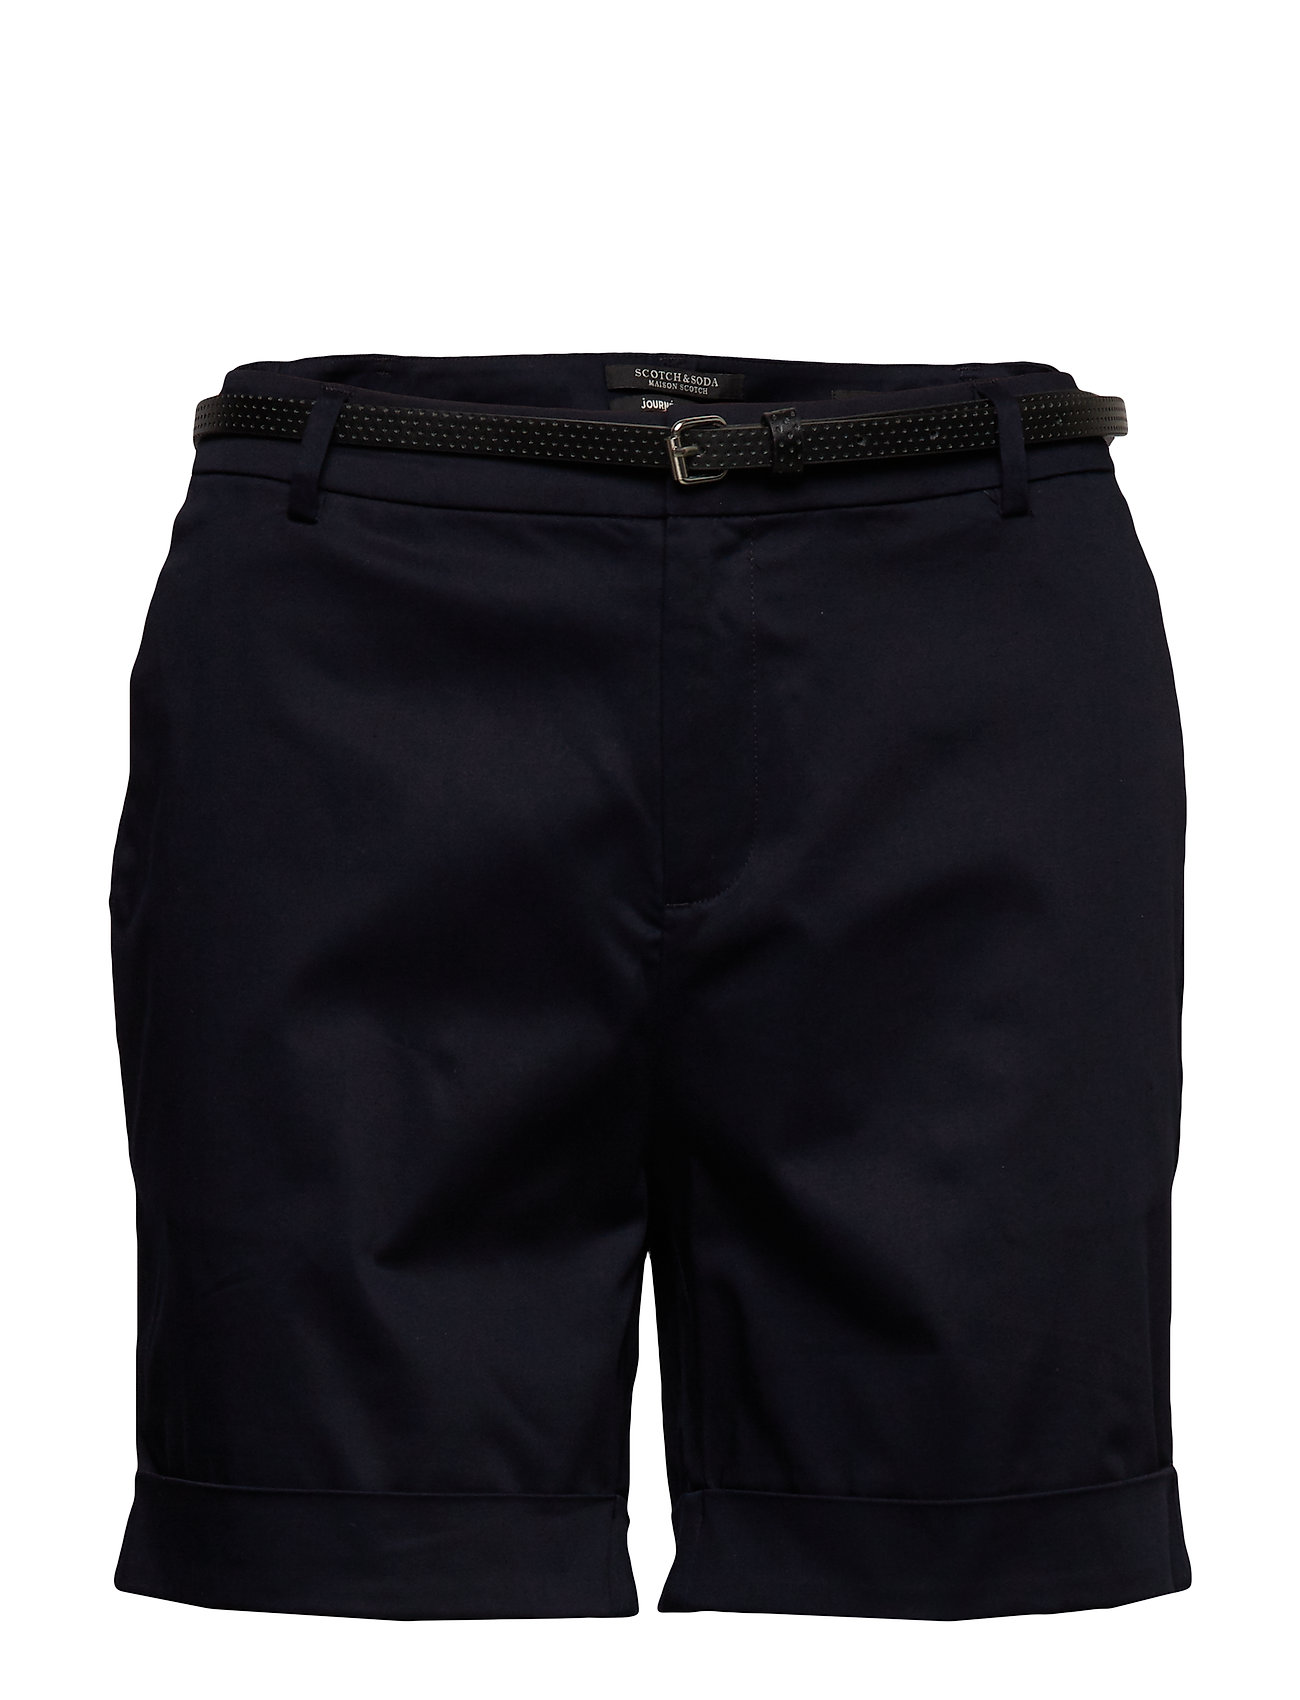 Scotch & Soda Longer length mercerised chino shorts, sold with a belt - NIGHT